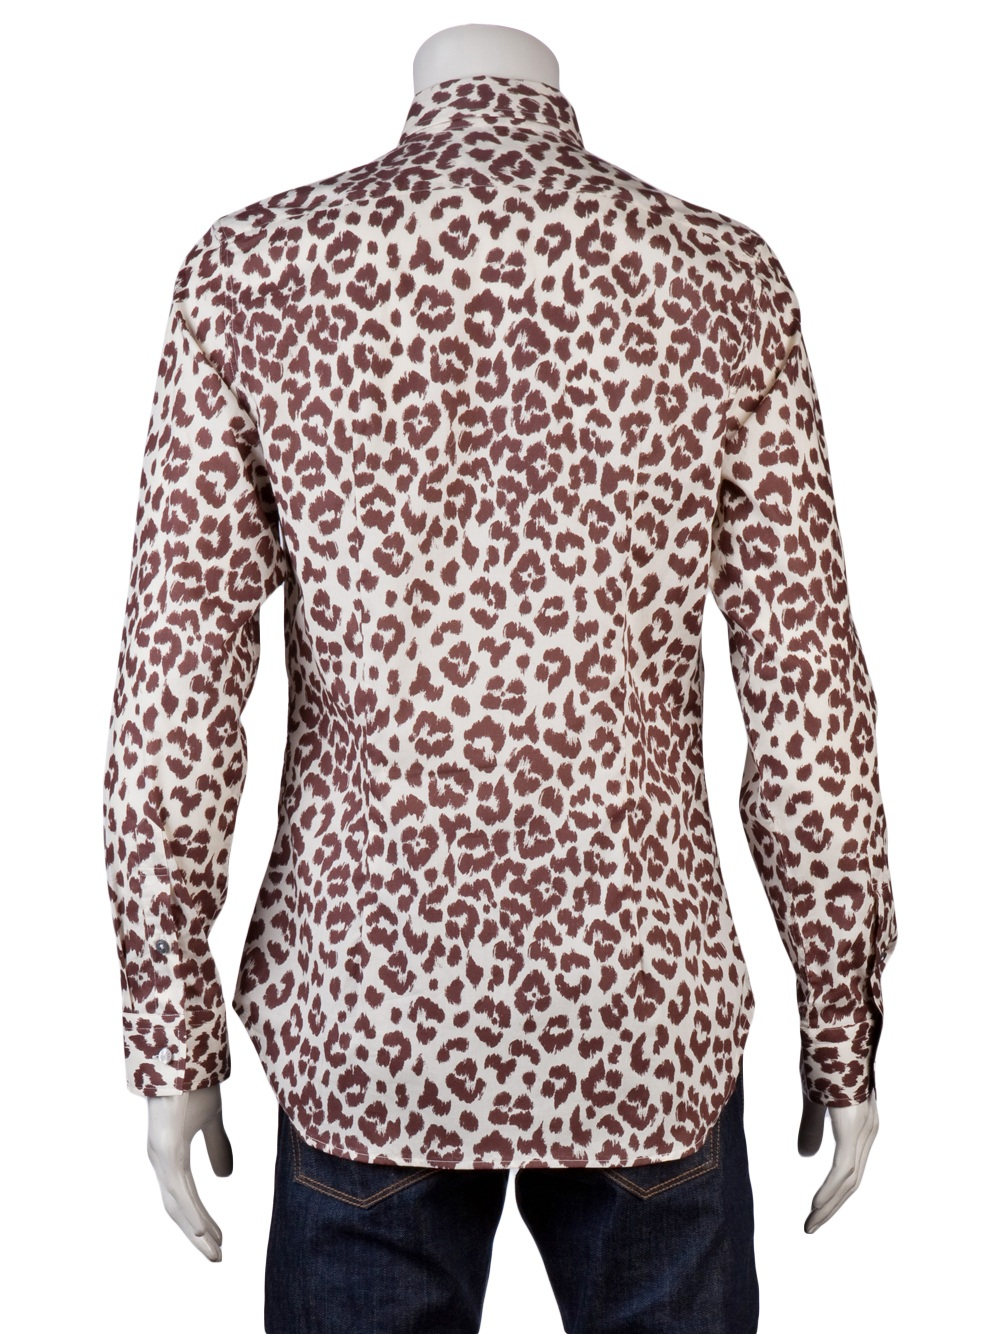 You don't need a pony for these cool polo shirts. From the beach to the office, our casual yet stylish Leopard Print Men's Polo Shirts make you the talk of the town. We have mens polos and womens polos in a variety of colors and adult sizes, giving you the ever-appealing look and feel you're after.